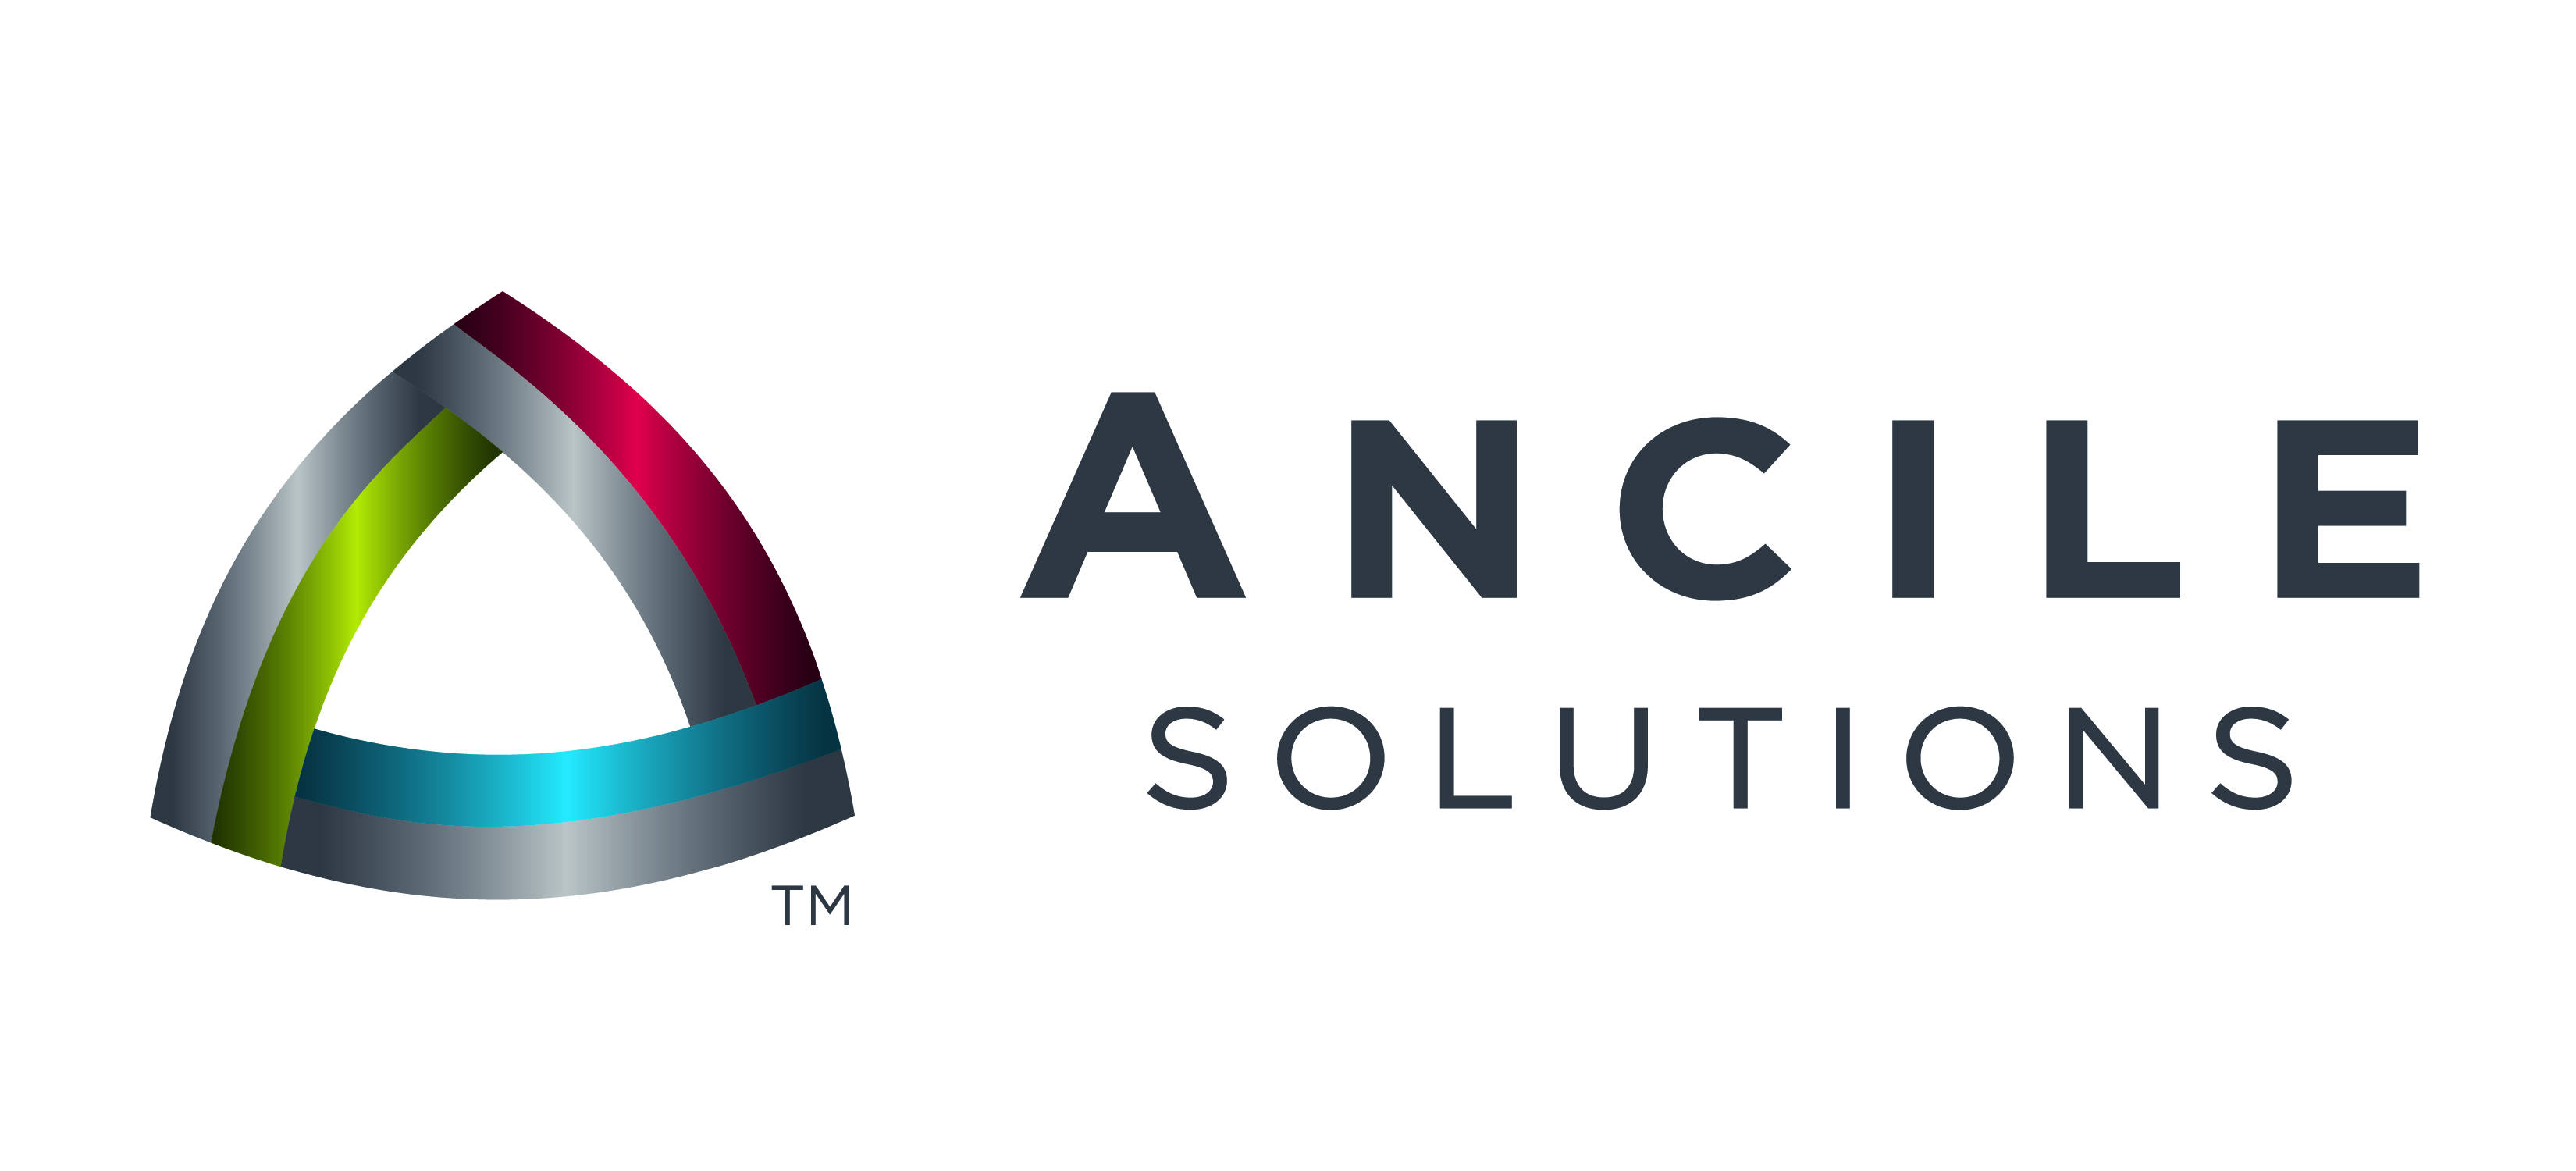 ANCILE Solutions Logo